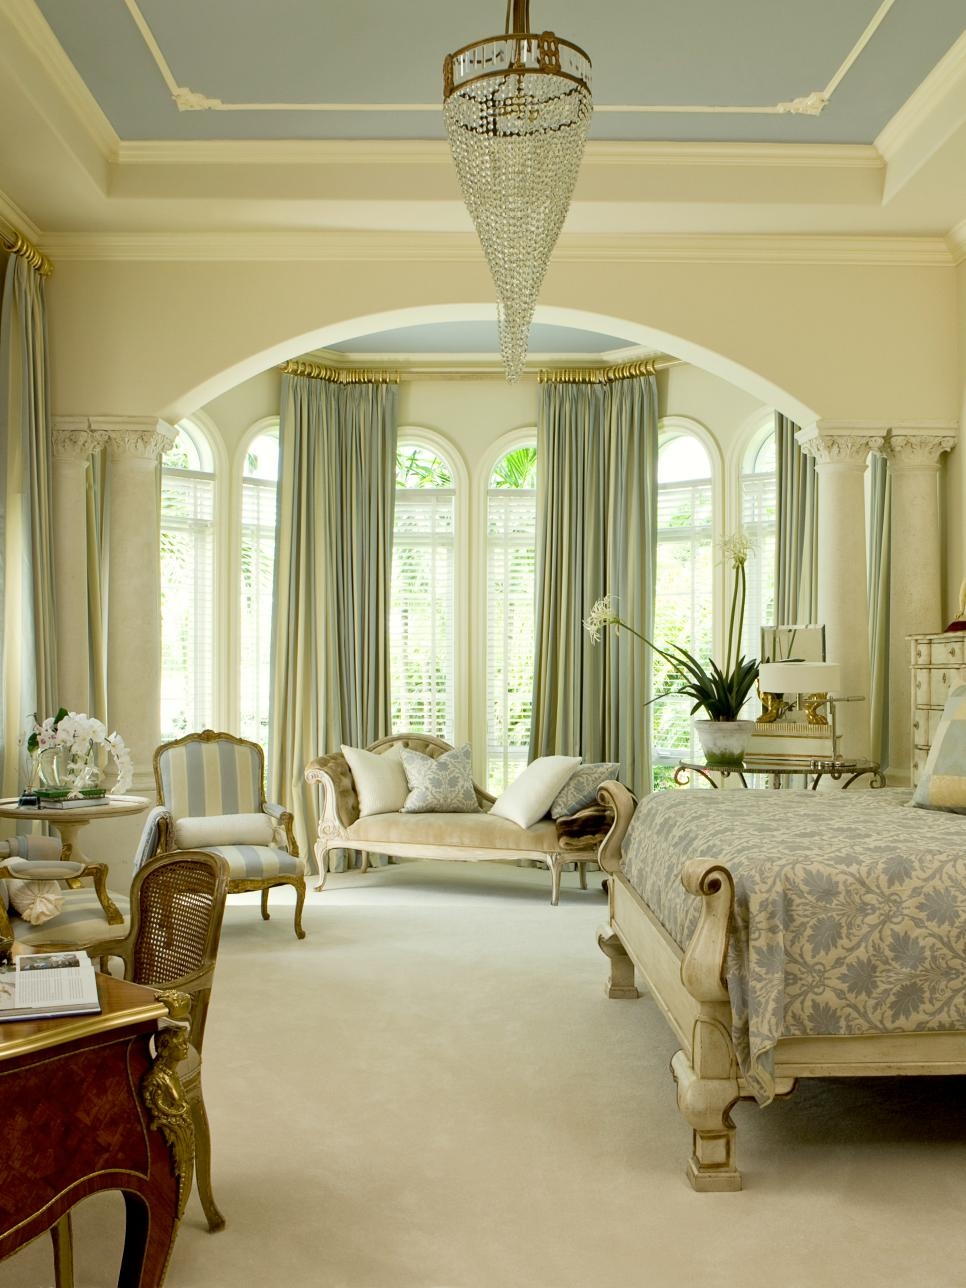 8 window treatment ideas for your bedroom hgtv. Interior Design Ideas. Home Design Ideas